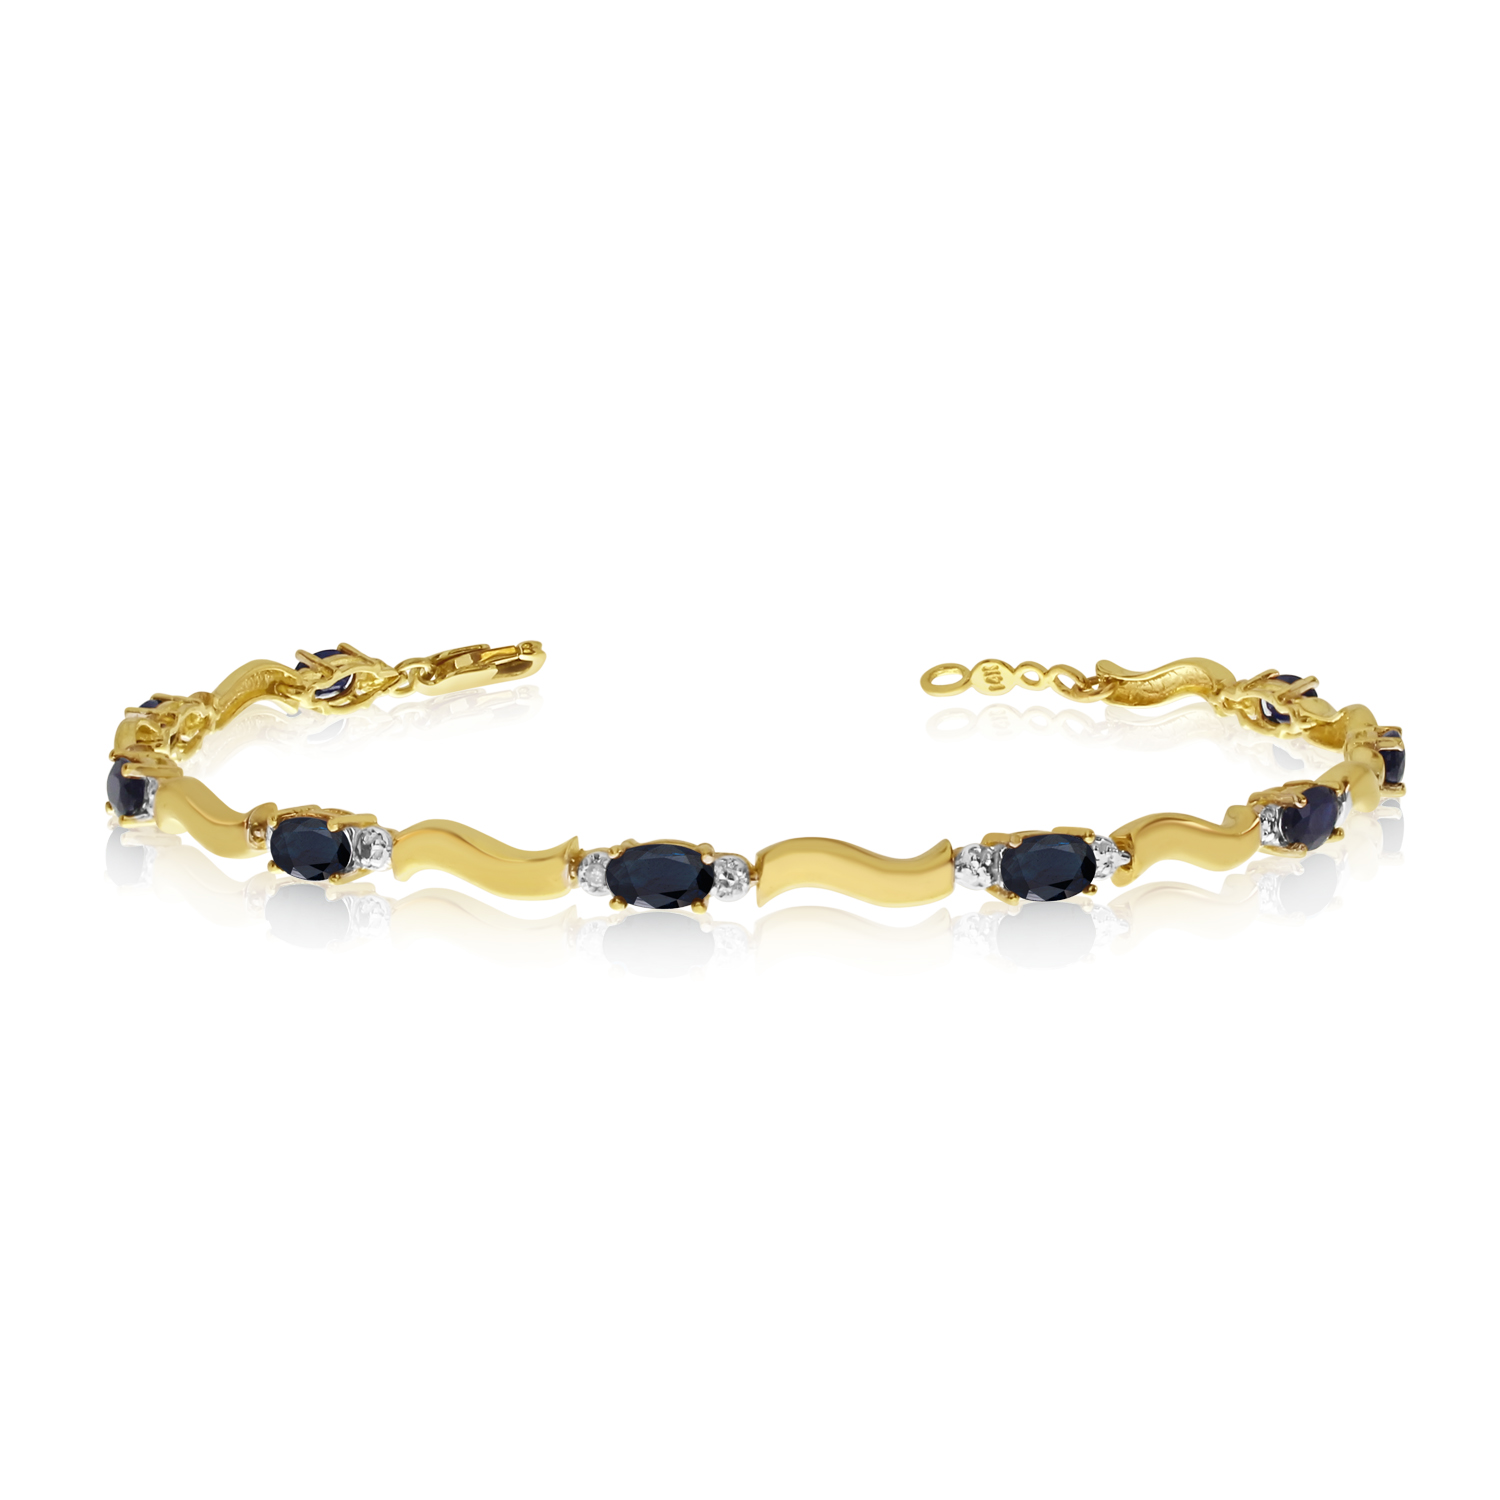 14K Yellow Gold Oval Sapphire and Diamond Bracelet by LCD